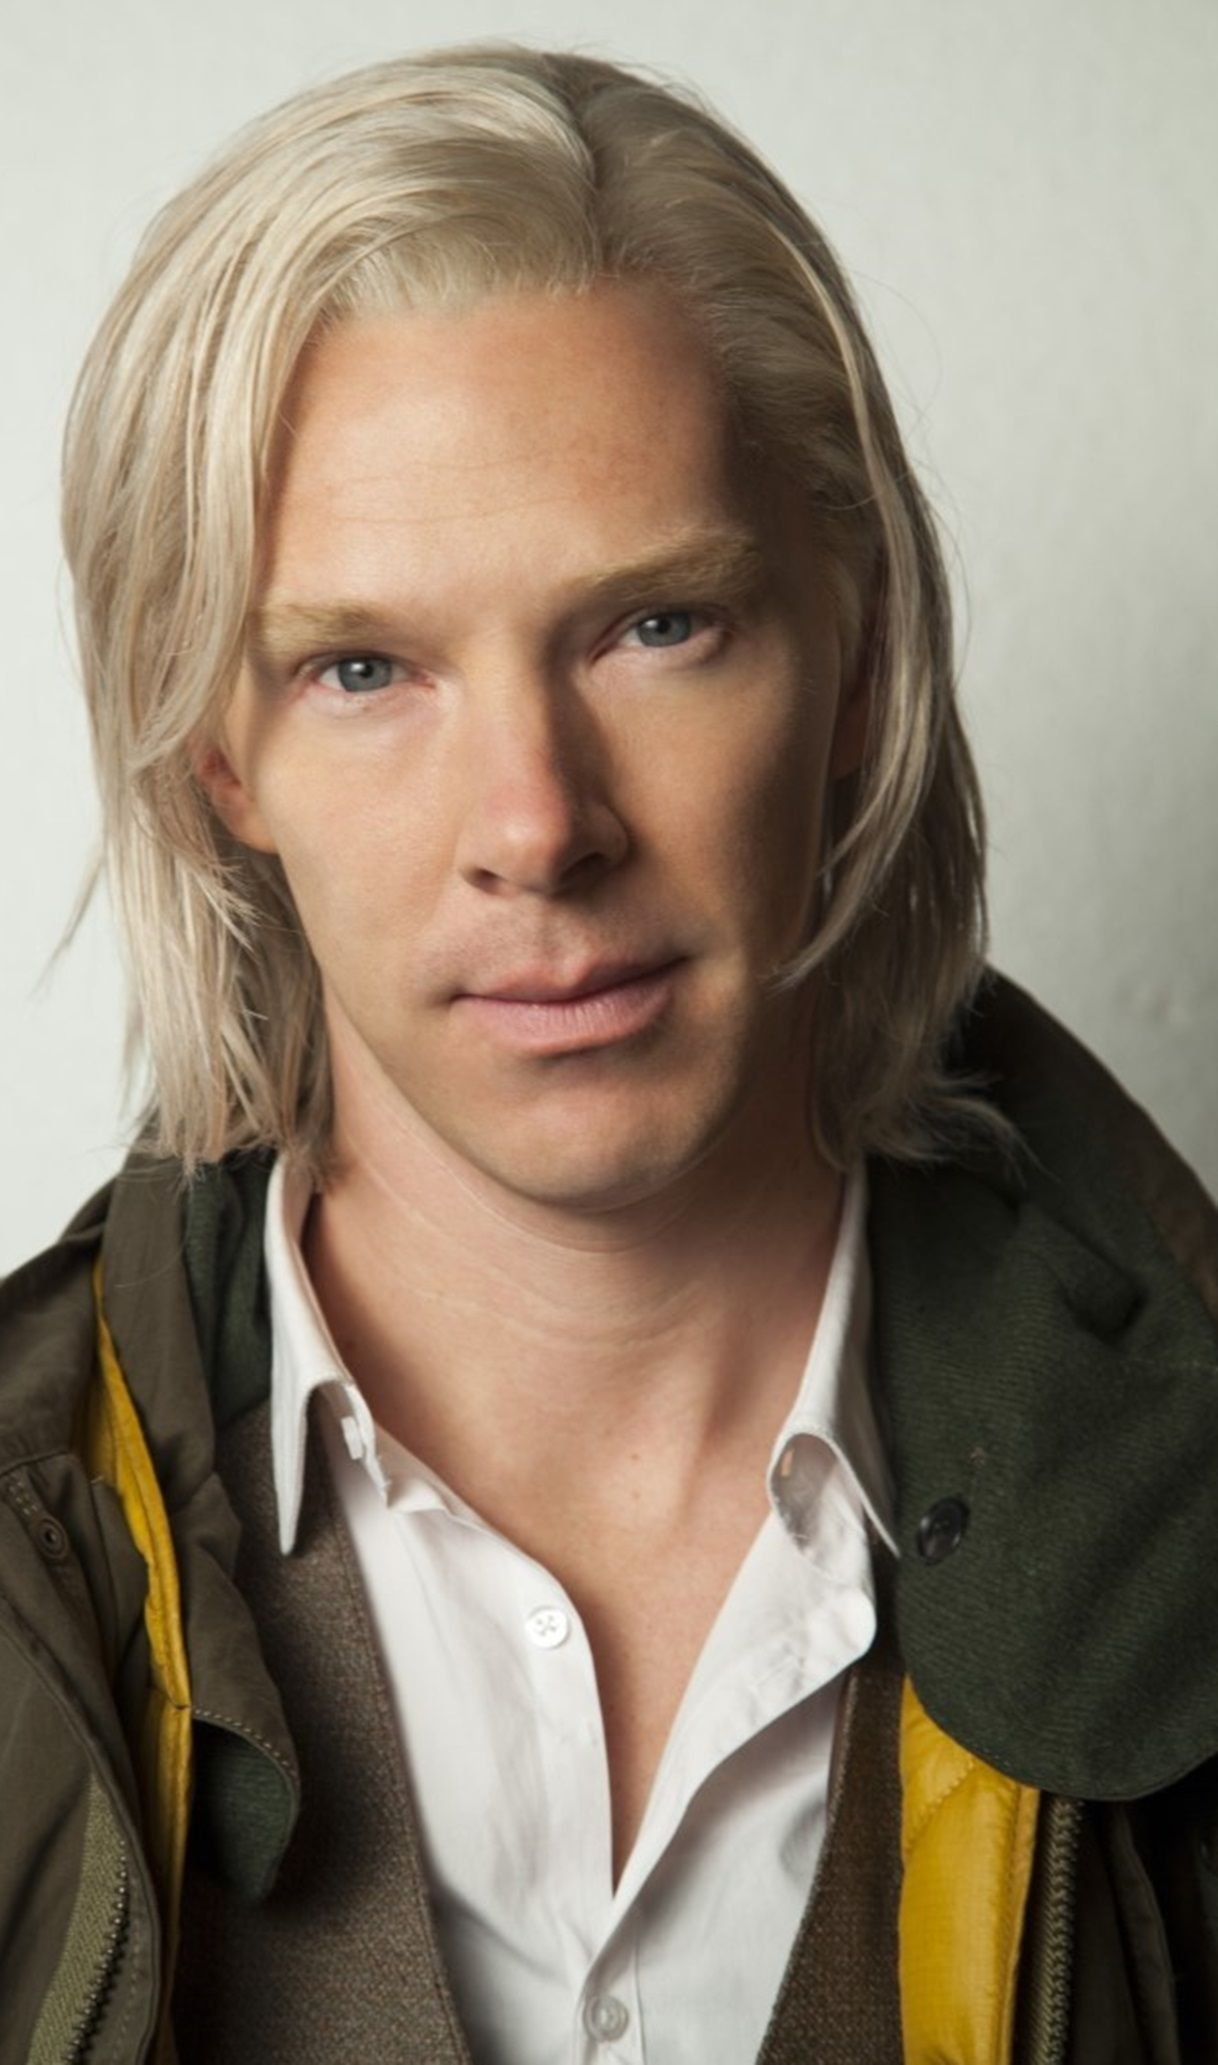 Benedict Cumberbatch Delicious As A White Blond Too This Man